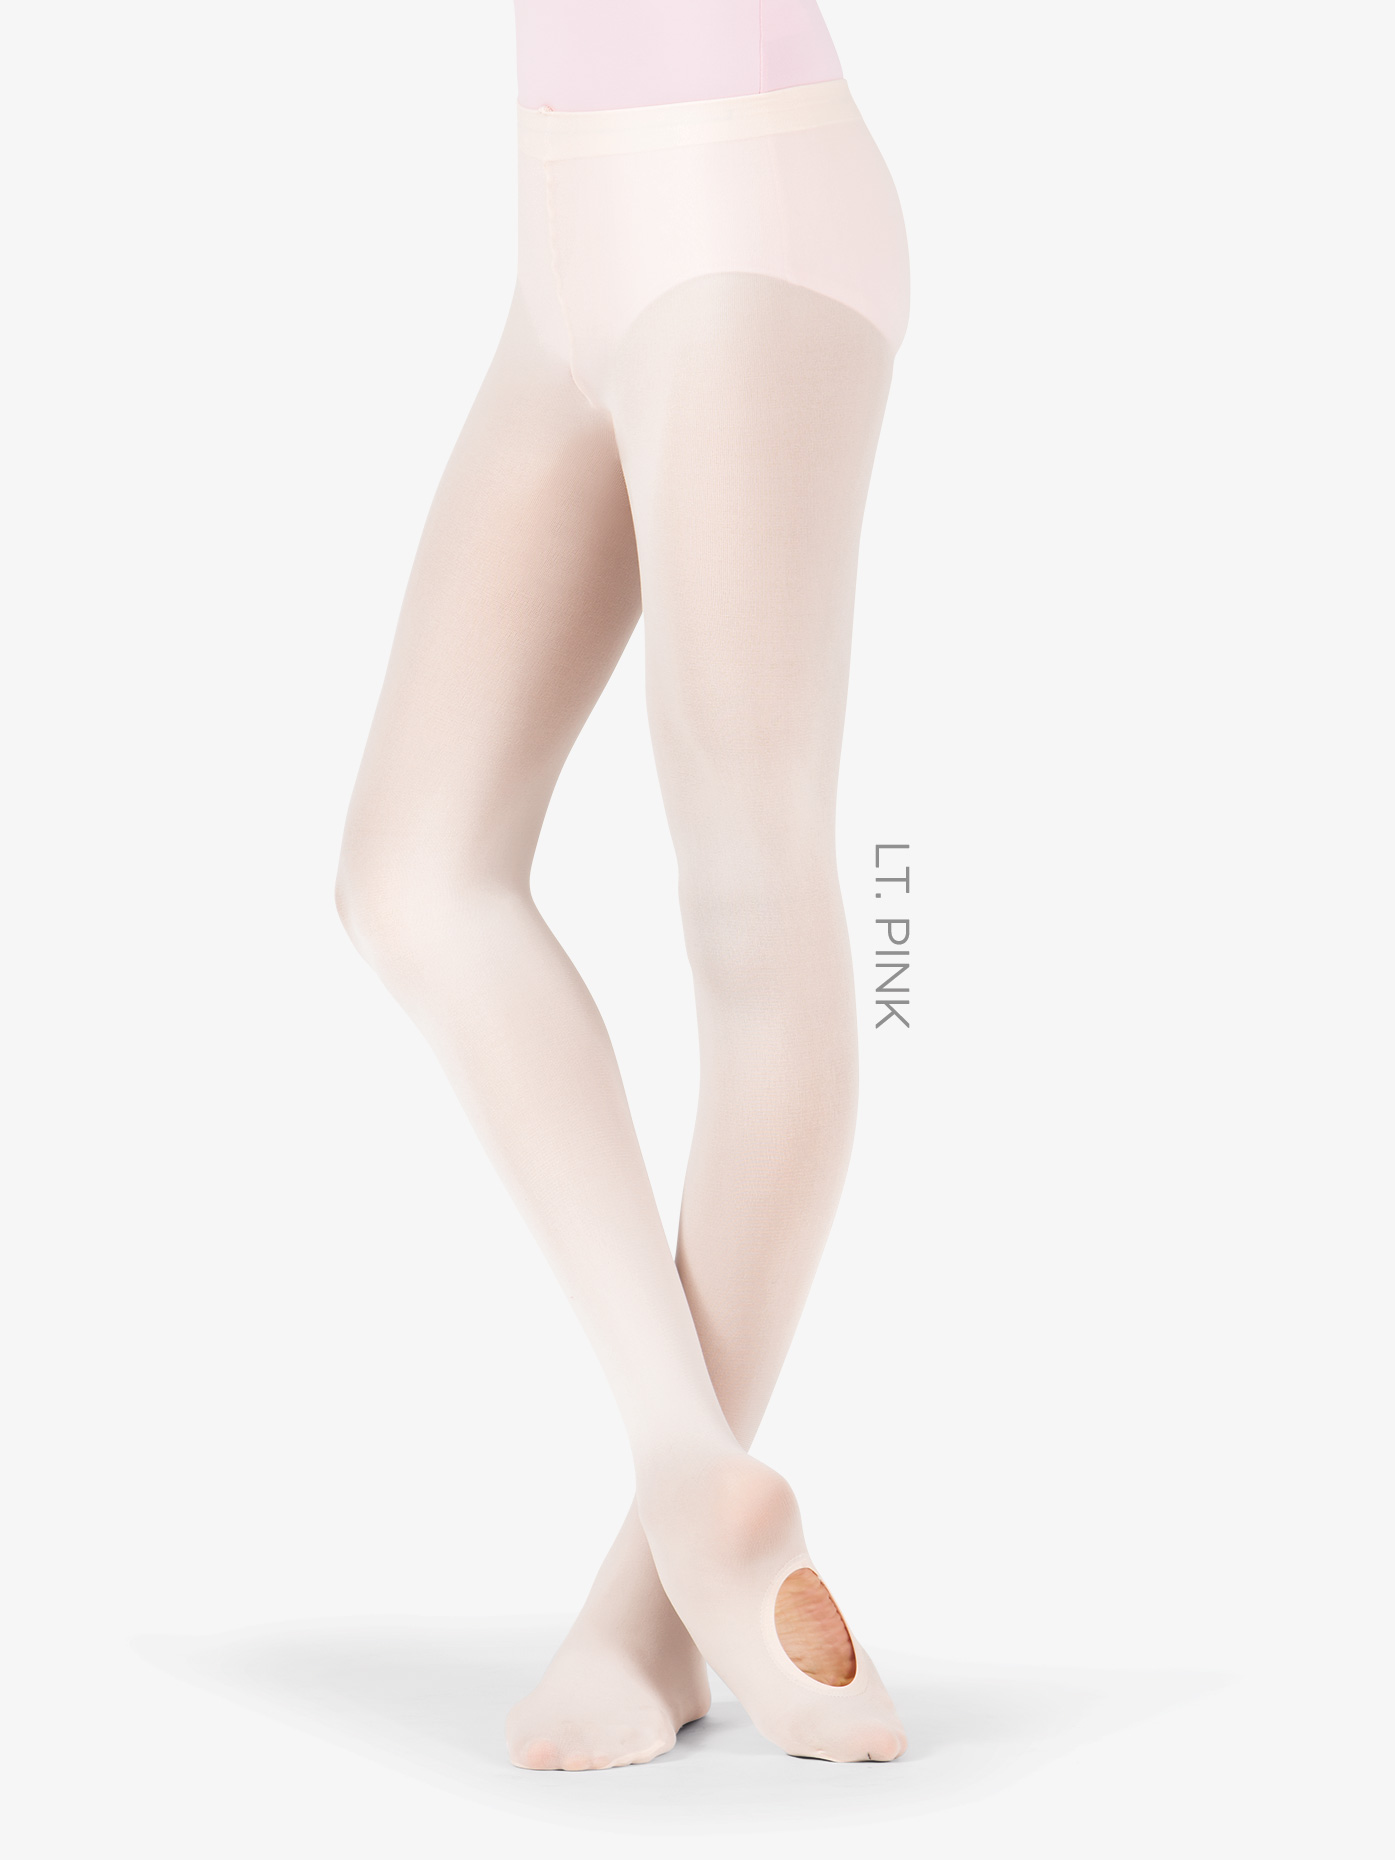 44375f6a1 Convertible Tights - Convertible Tights